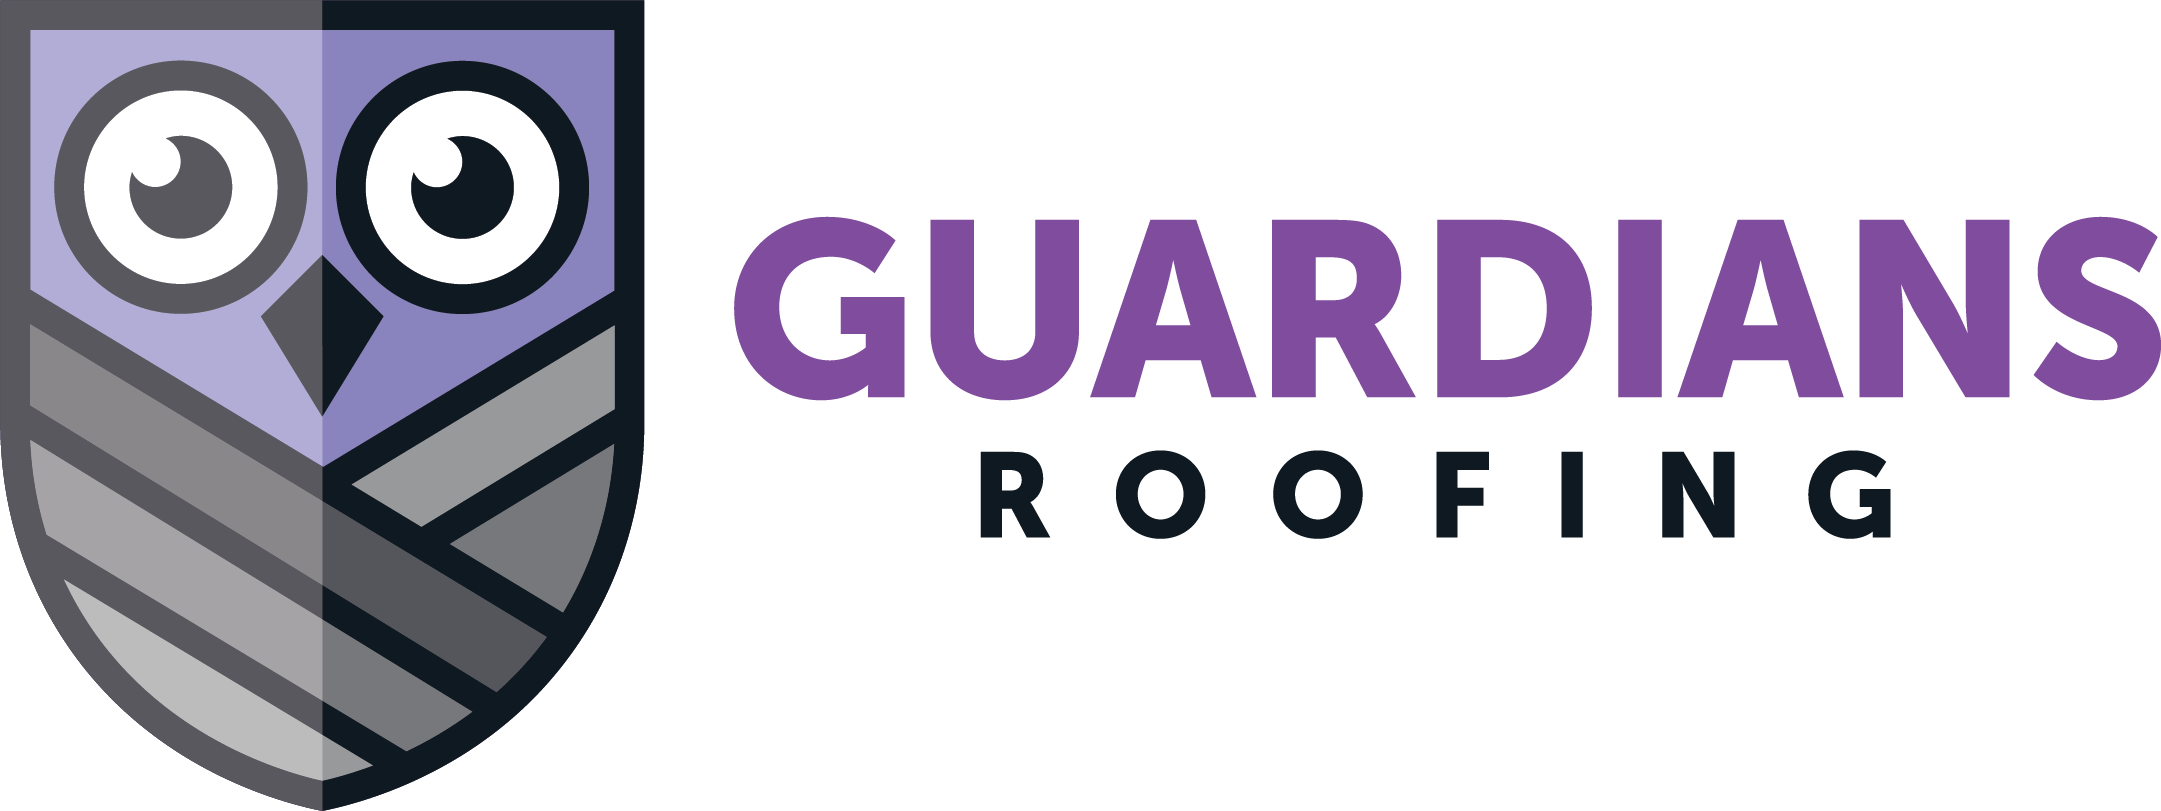 Guardians Roofing Logo Horizontal